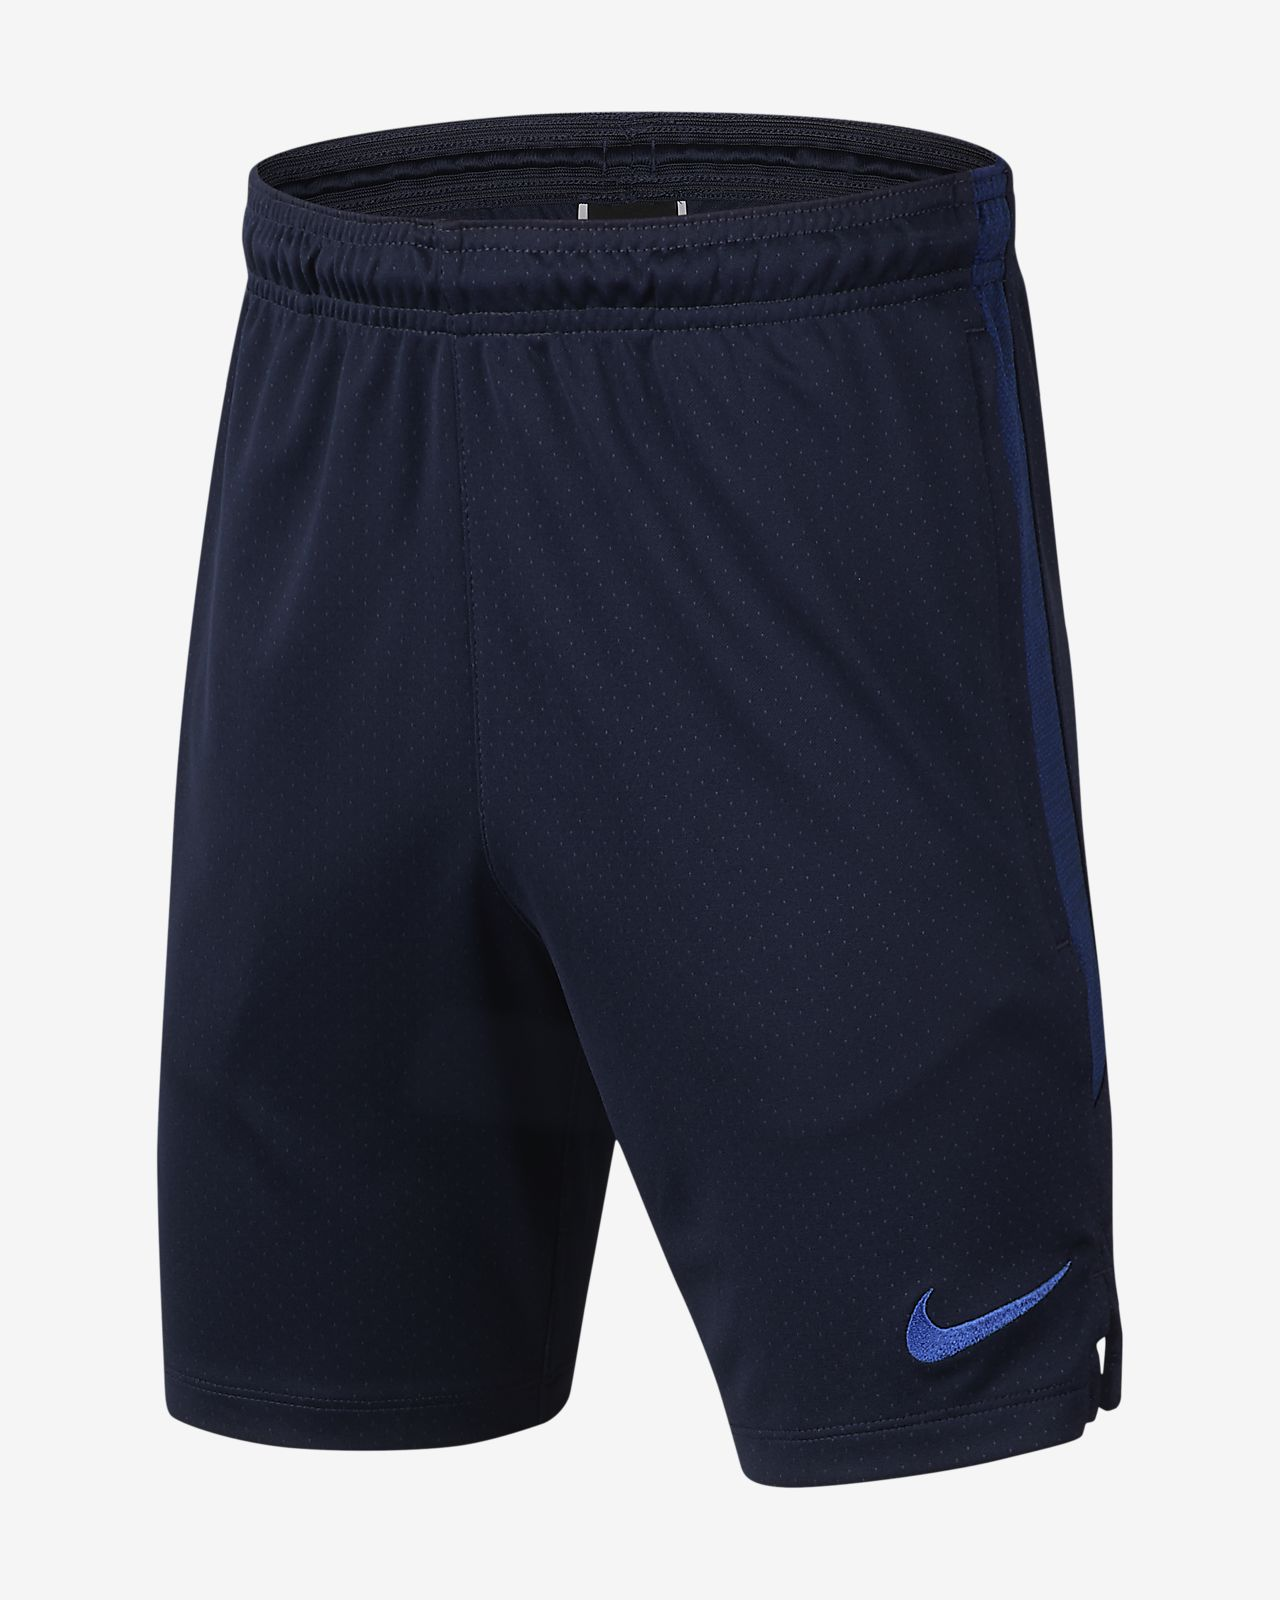 Short de football Nike Dri-FIT Chelsea FC Strike pour Enfant plus âgé